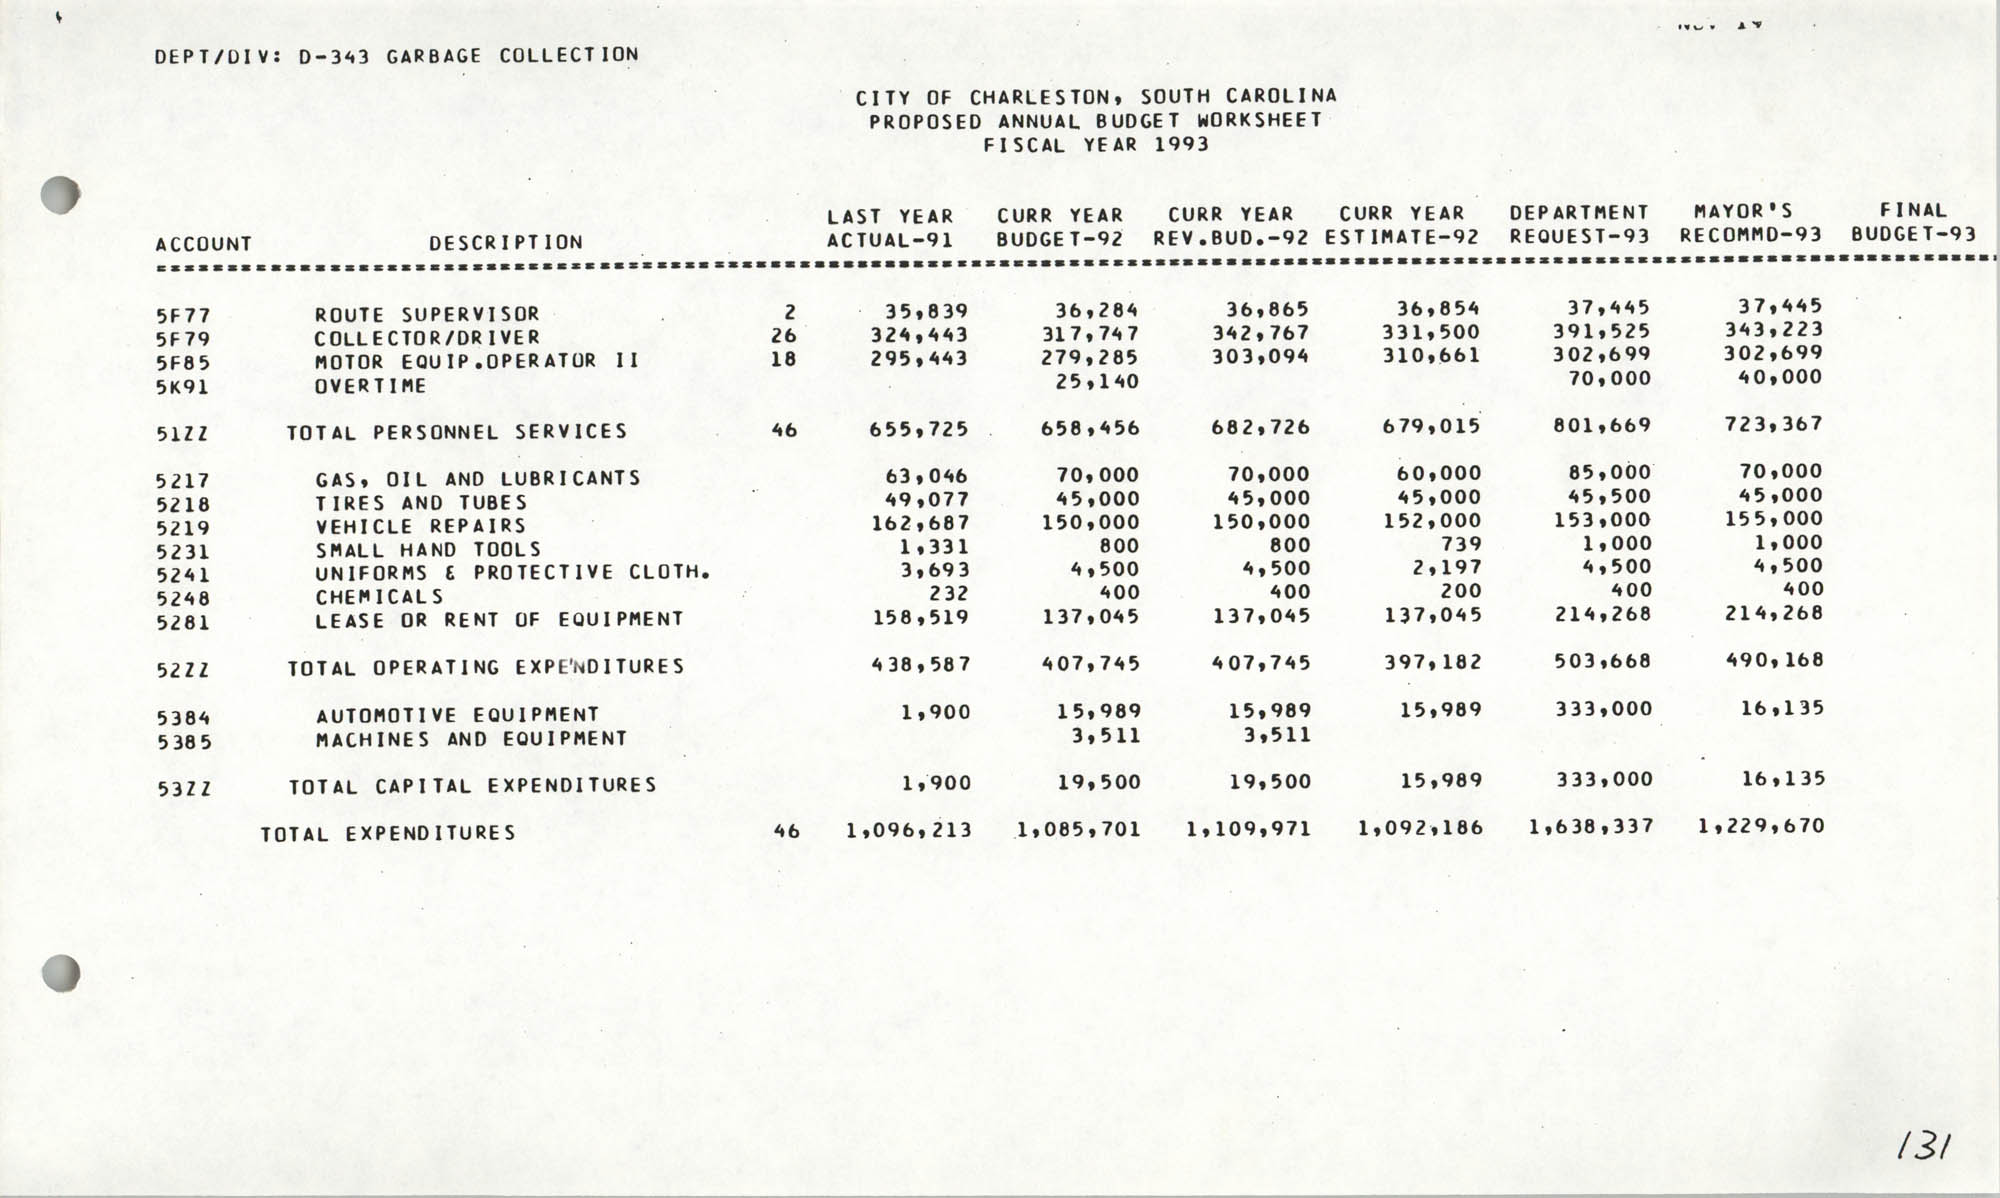 The City Council of Charleston, South Carolina, 1993 Budget, Page 131